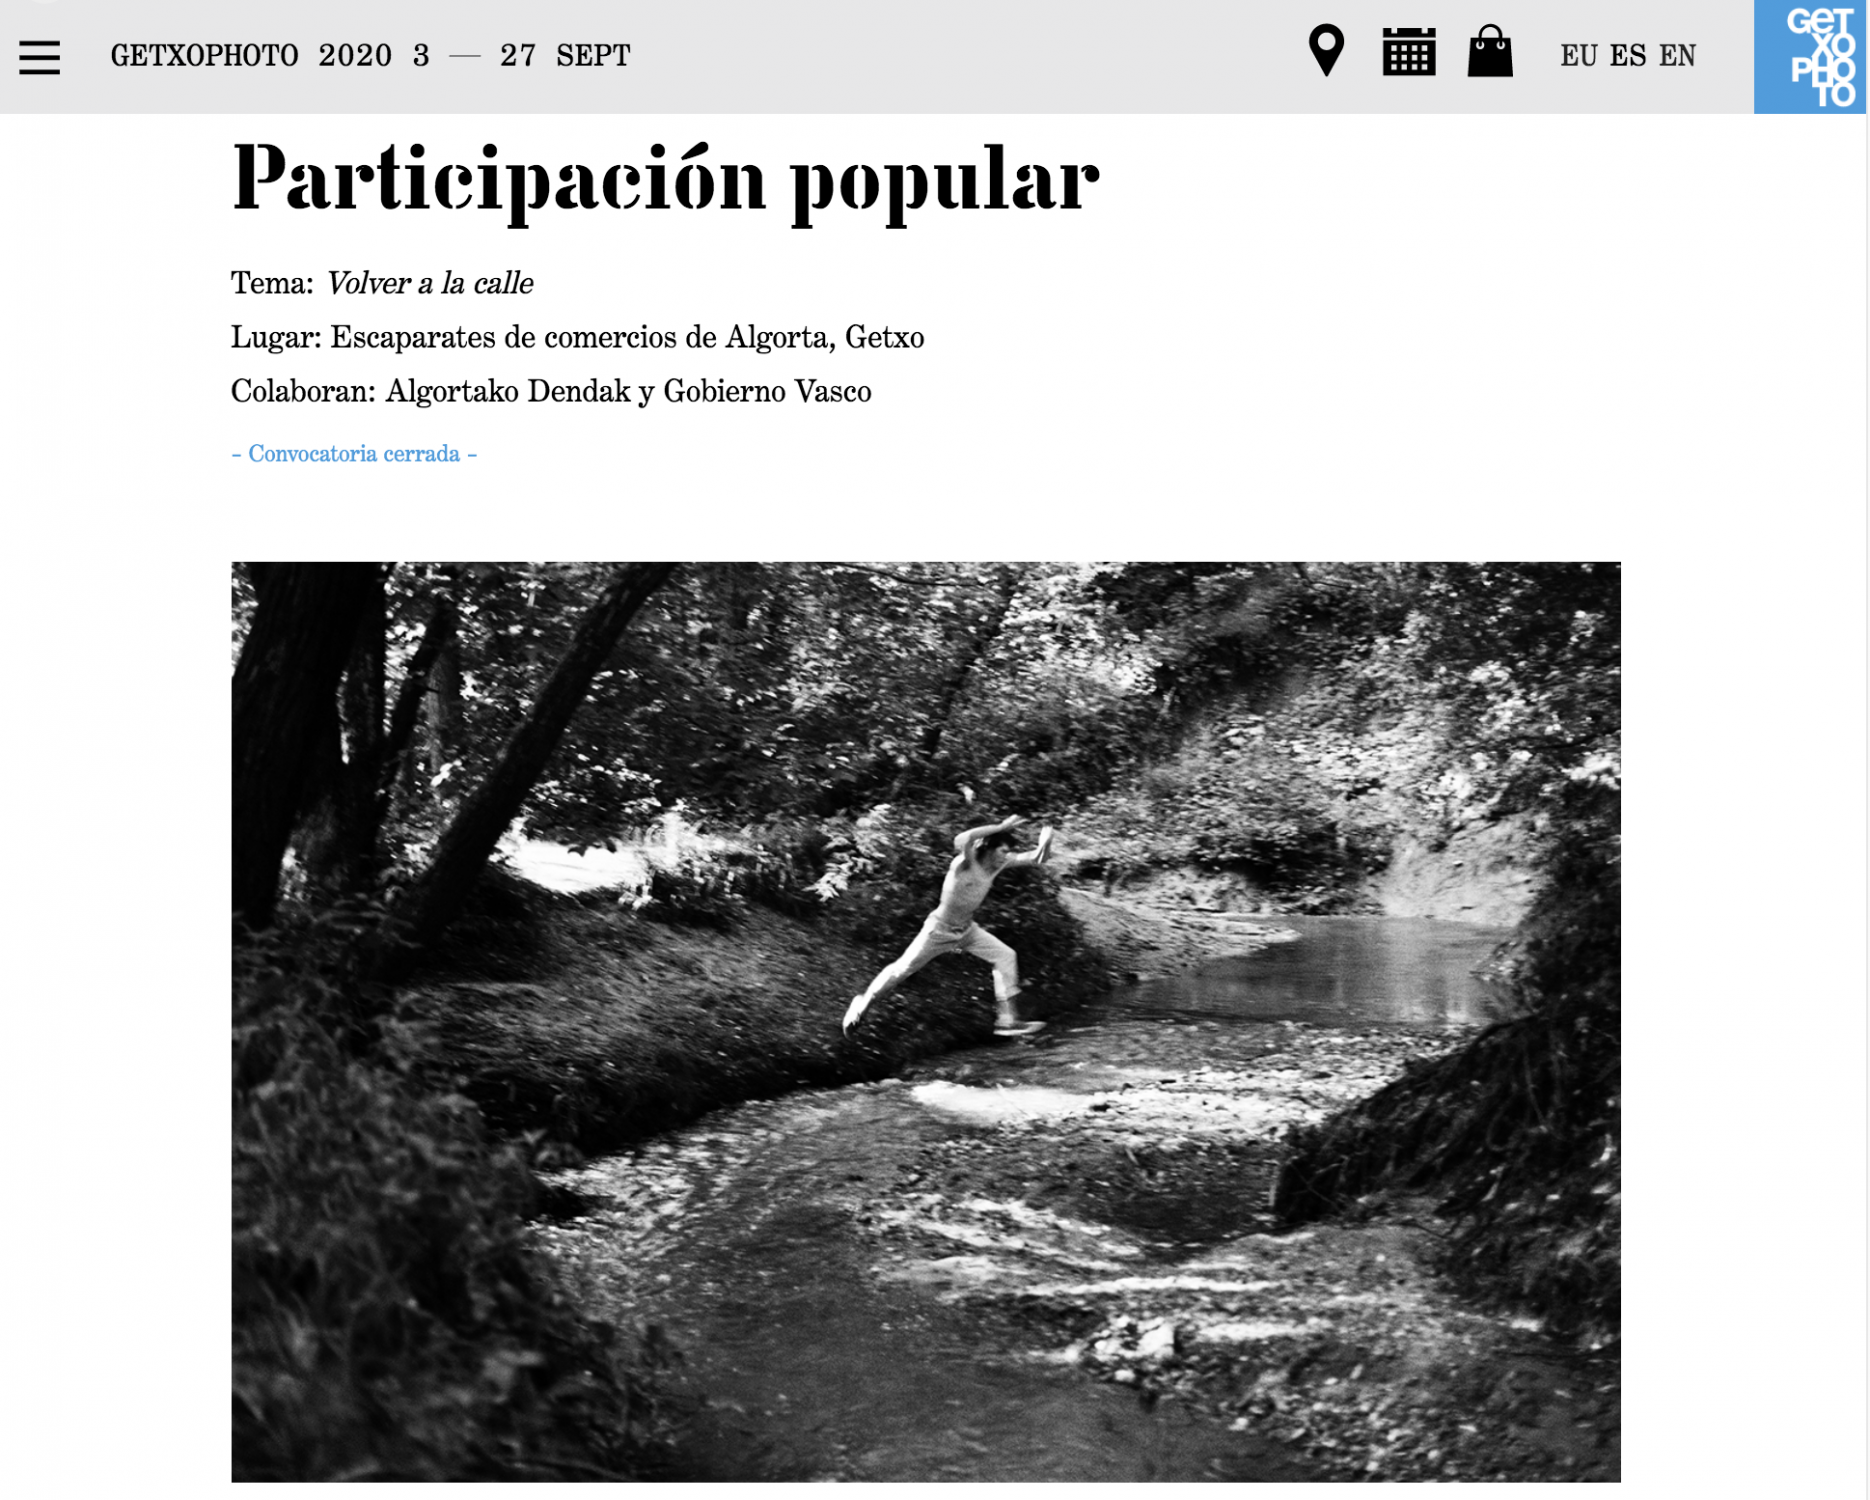 Art and Documentary Photography - Loading Captura_de_pantalla_2020-09-01_a_la(s)_16.04.22.png